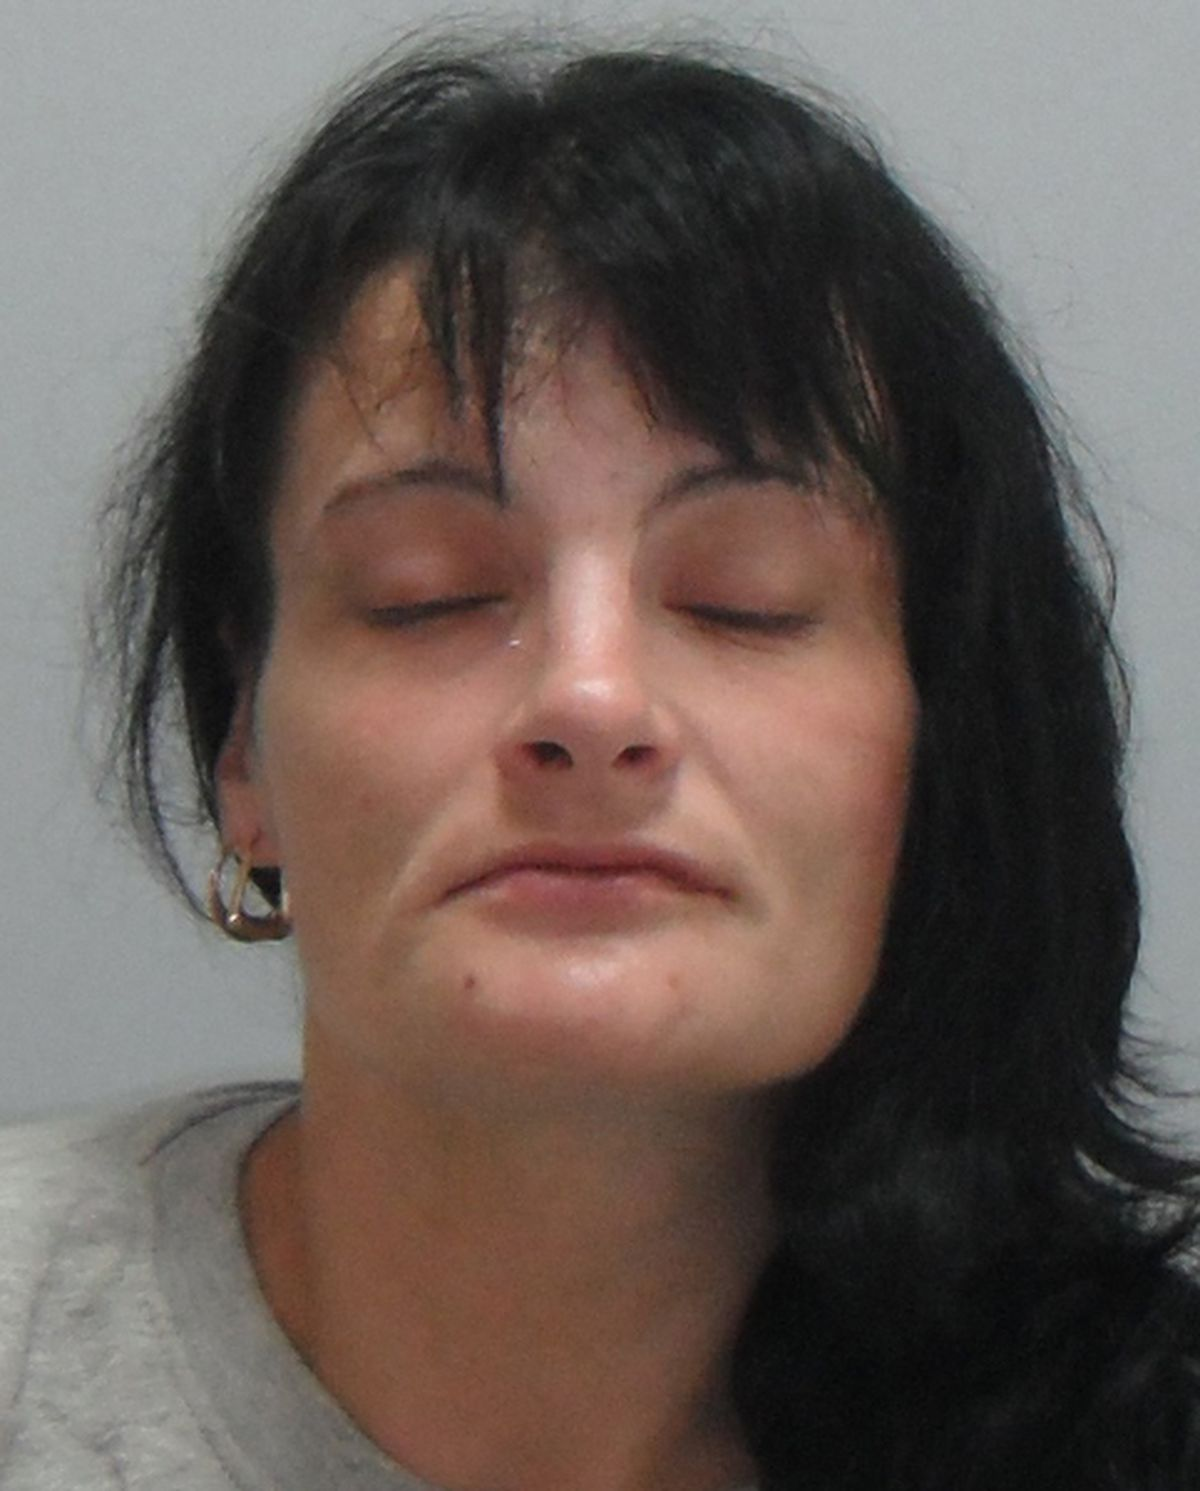 Fraudster Theresa Willett was locked up for 18 months